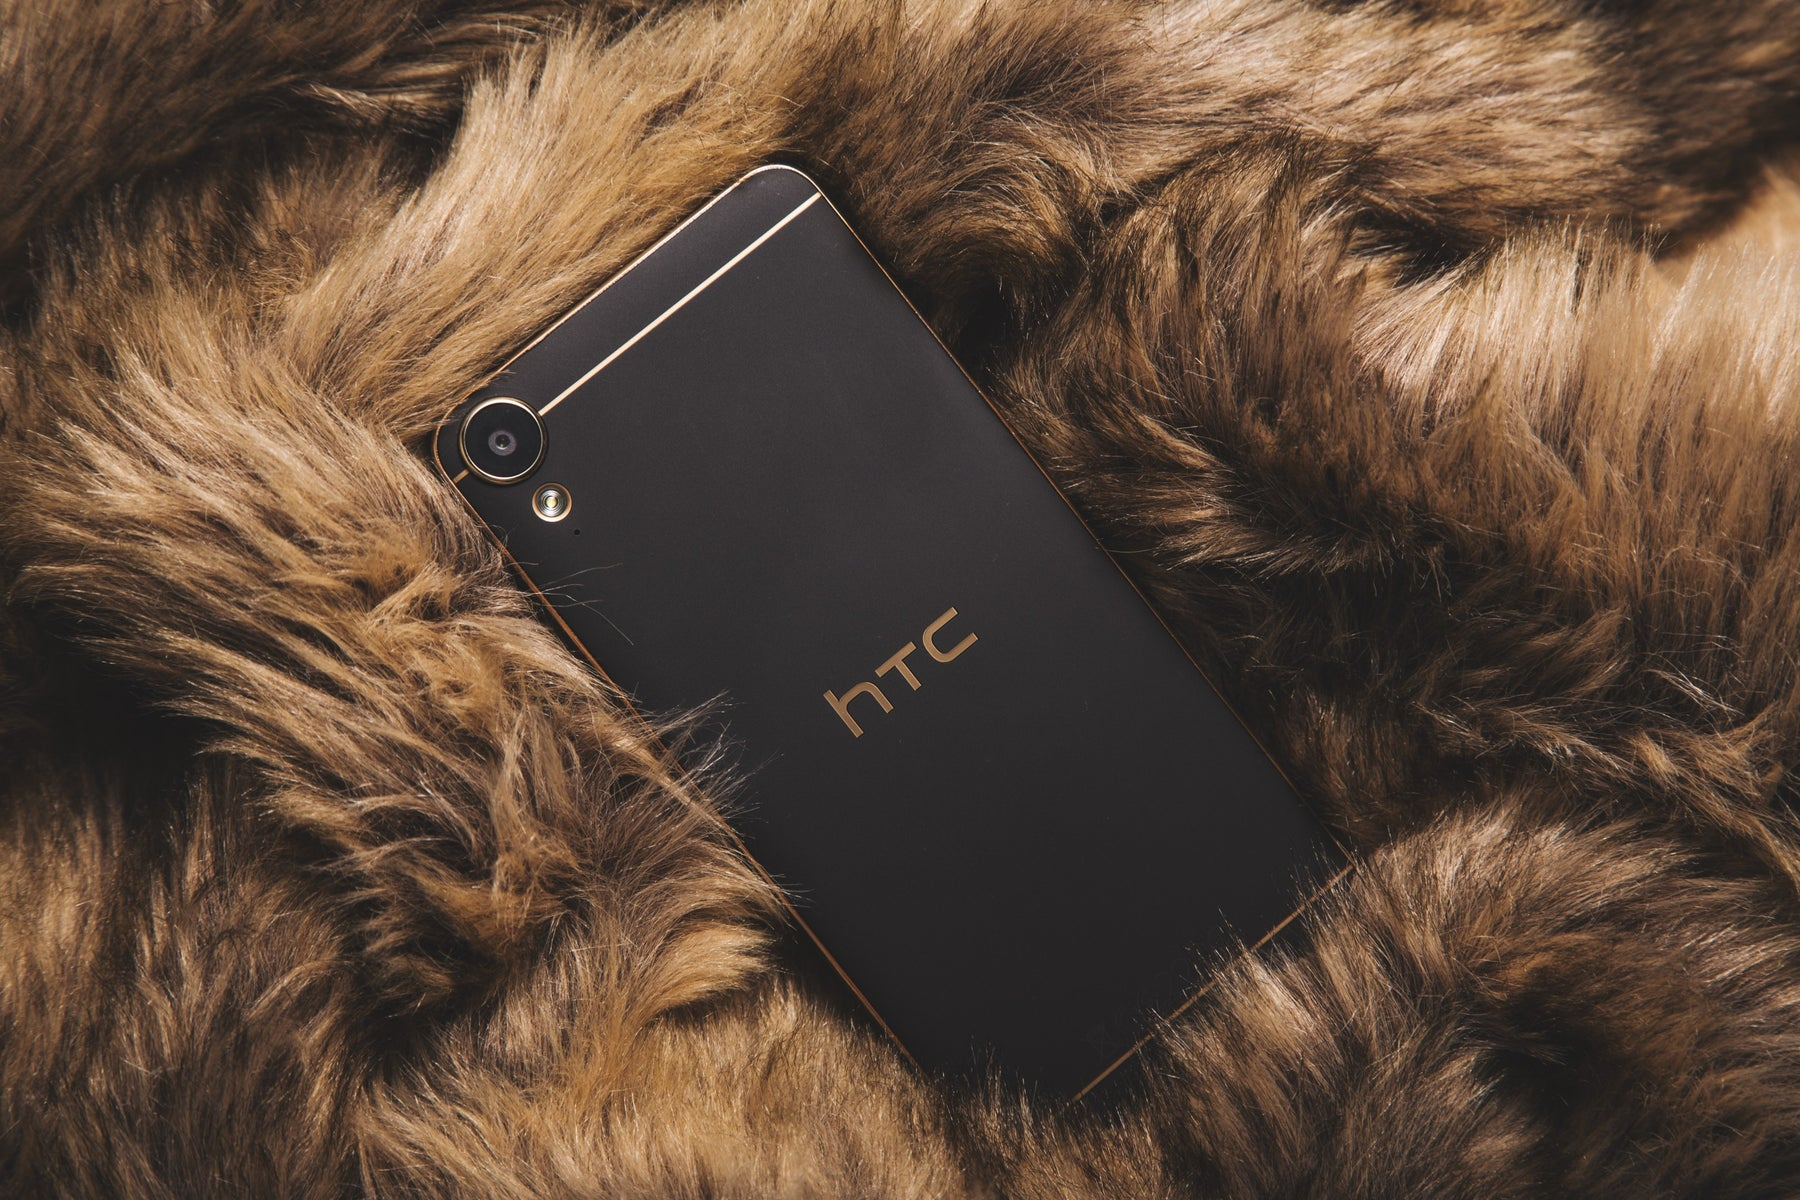 The Procedure To Carrier Unlock HTC Phones